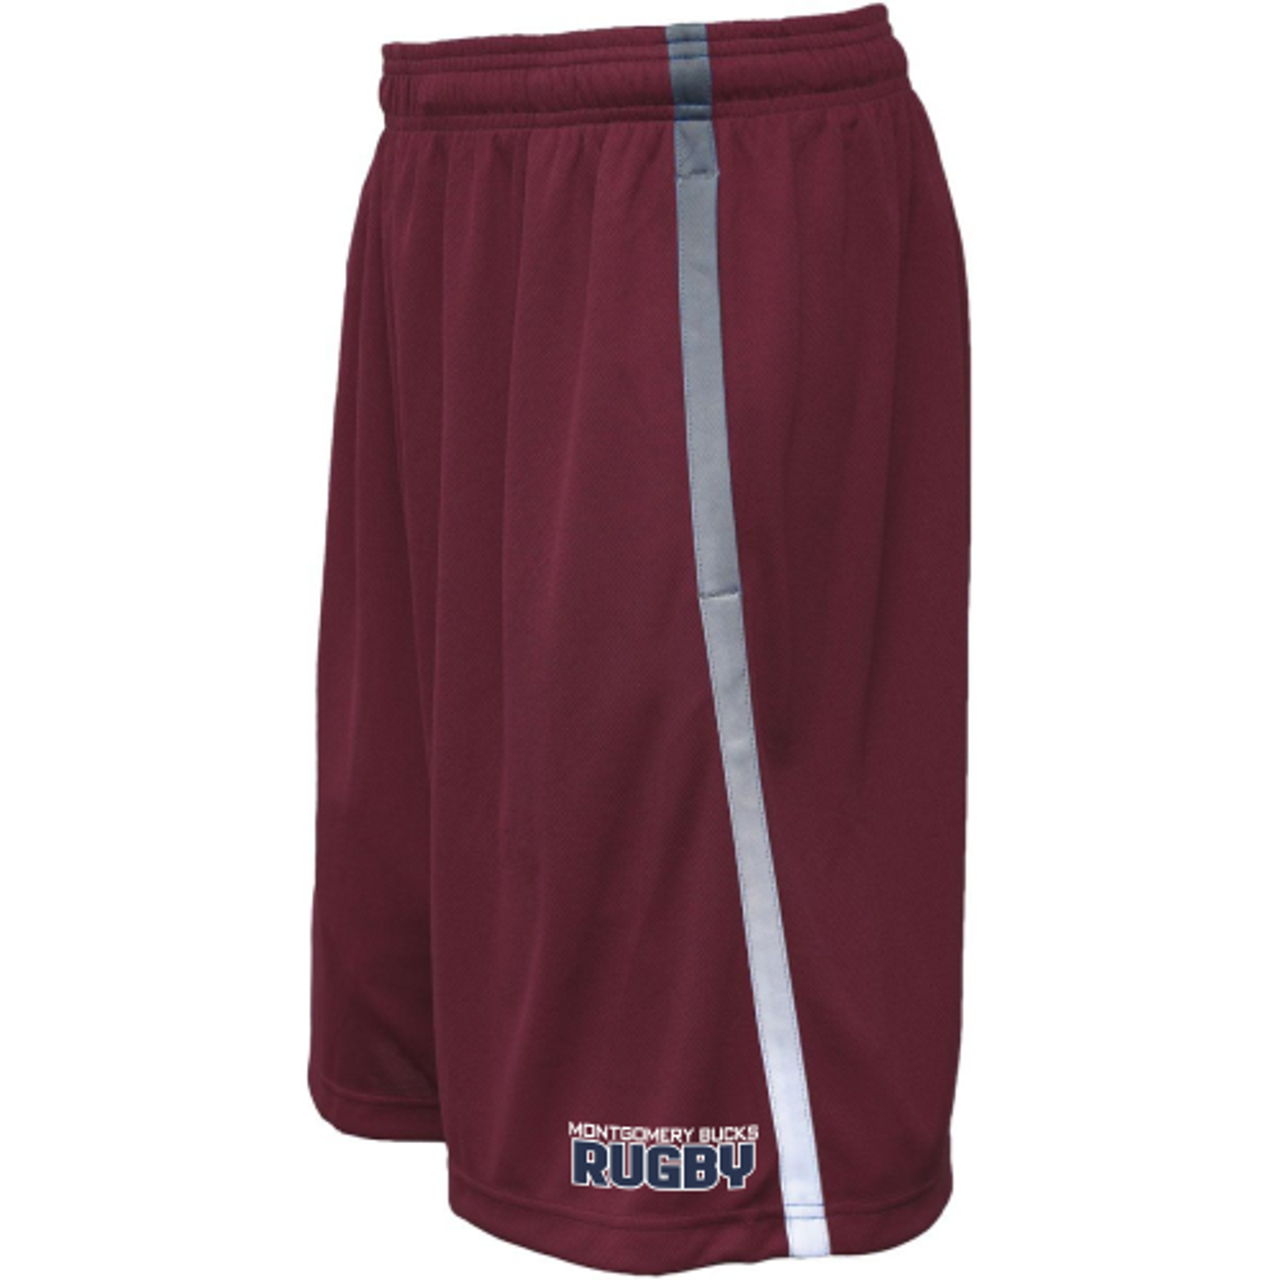 MB Rugby Gym Shorts, Maroon